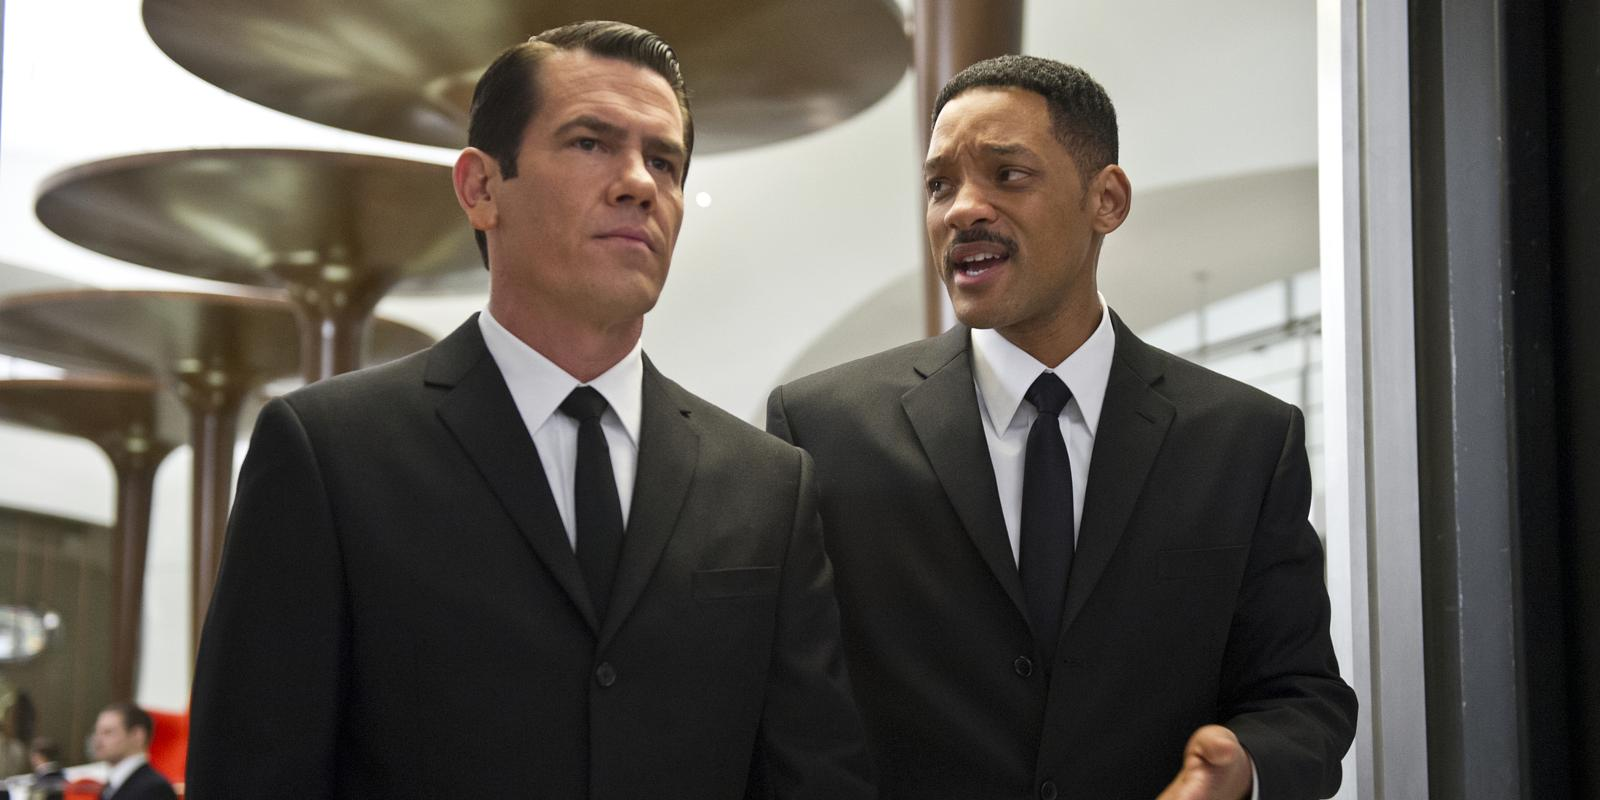 black single men in tyler This is a rare occasion where the movie star in the tyler perry movie is a bigger deal than the filmmaker  a filmmaker who almost single-handedly kept a generation of black actors and.